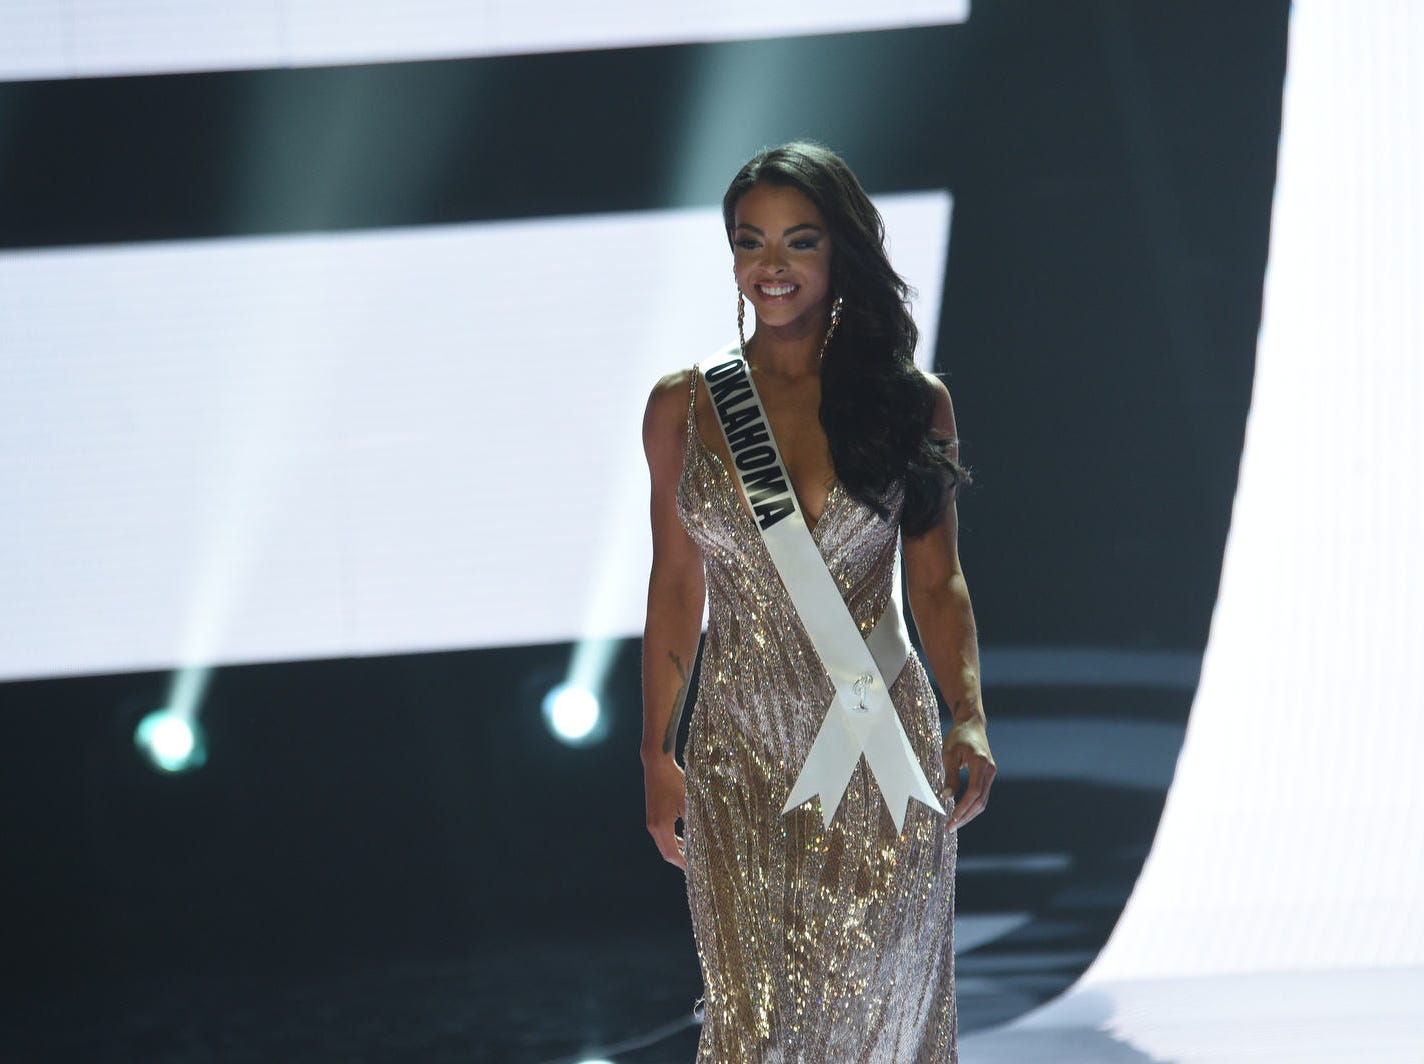 The 2019 Miss USA final competition in the Grand Theatre in the Grand Sierra Resort in Reno on May 2, 2019.